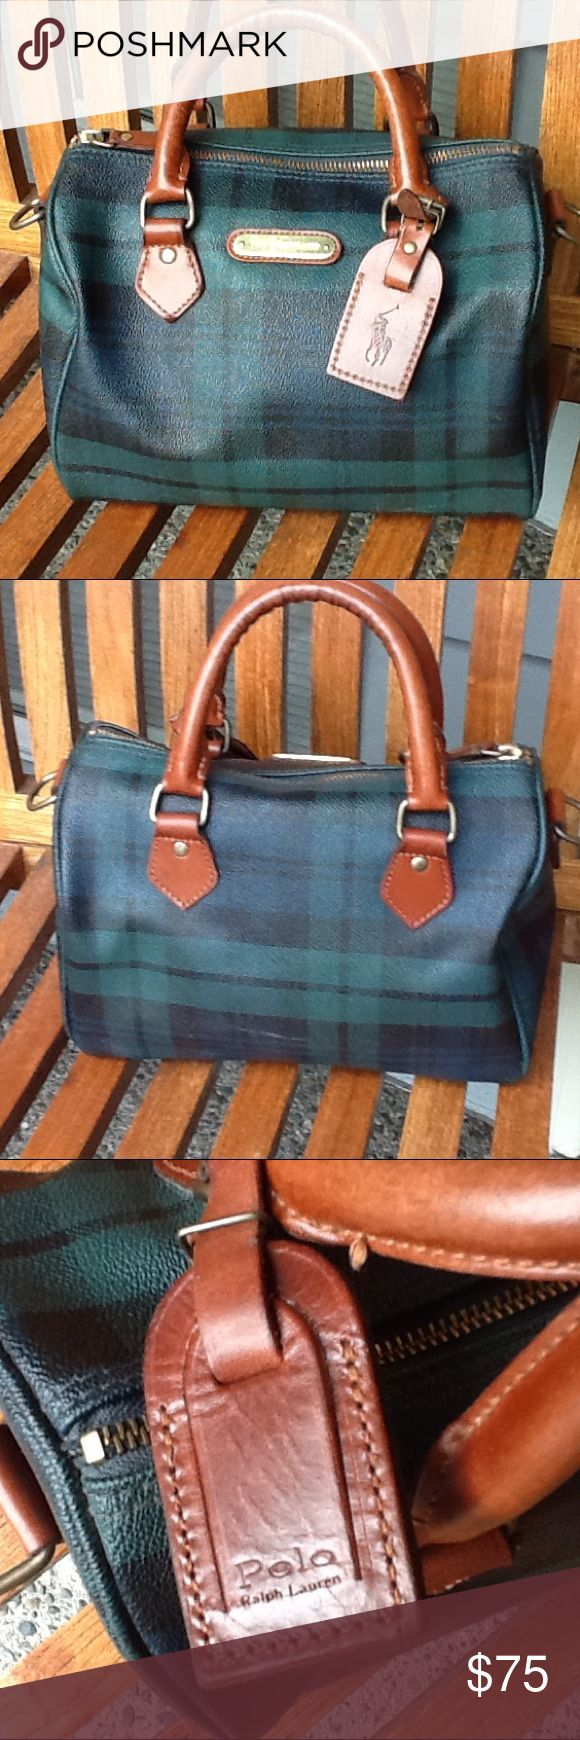 "Vintage Polo Ralph Lauren handbag Green plaid with leather trim. Good vintage used condition. There are some interior marks. About 10"" wide, 8"" tall, and 6"" deep at bottom. Polo By Ralph Lauren Bags"